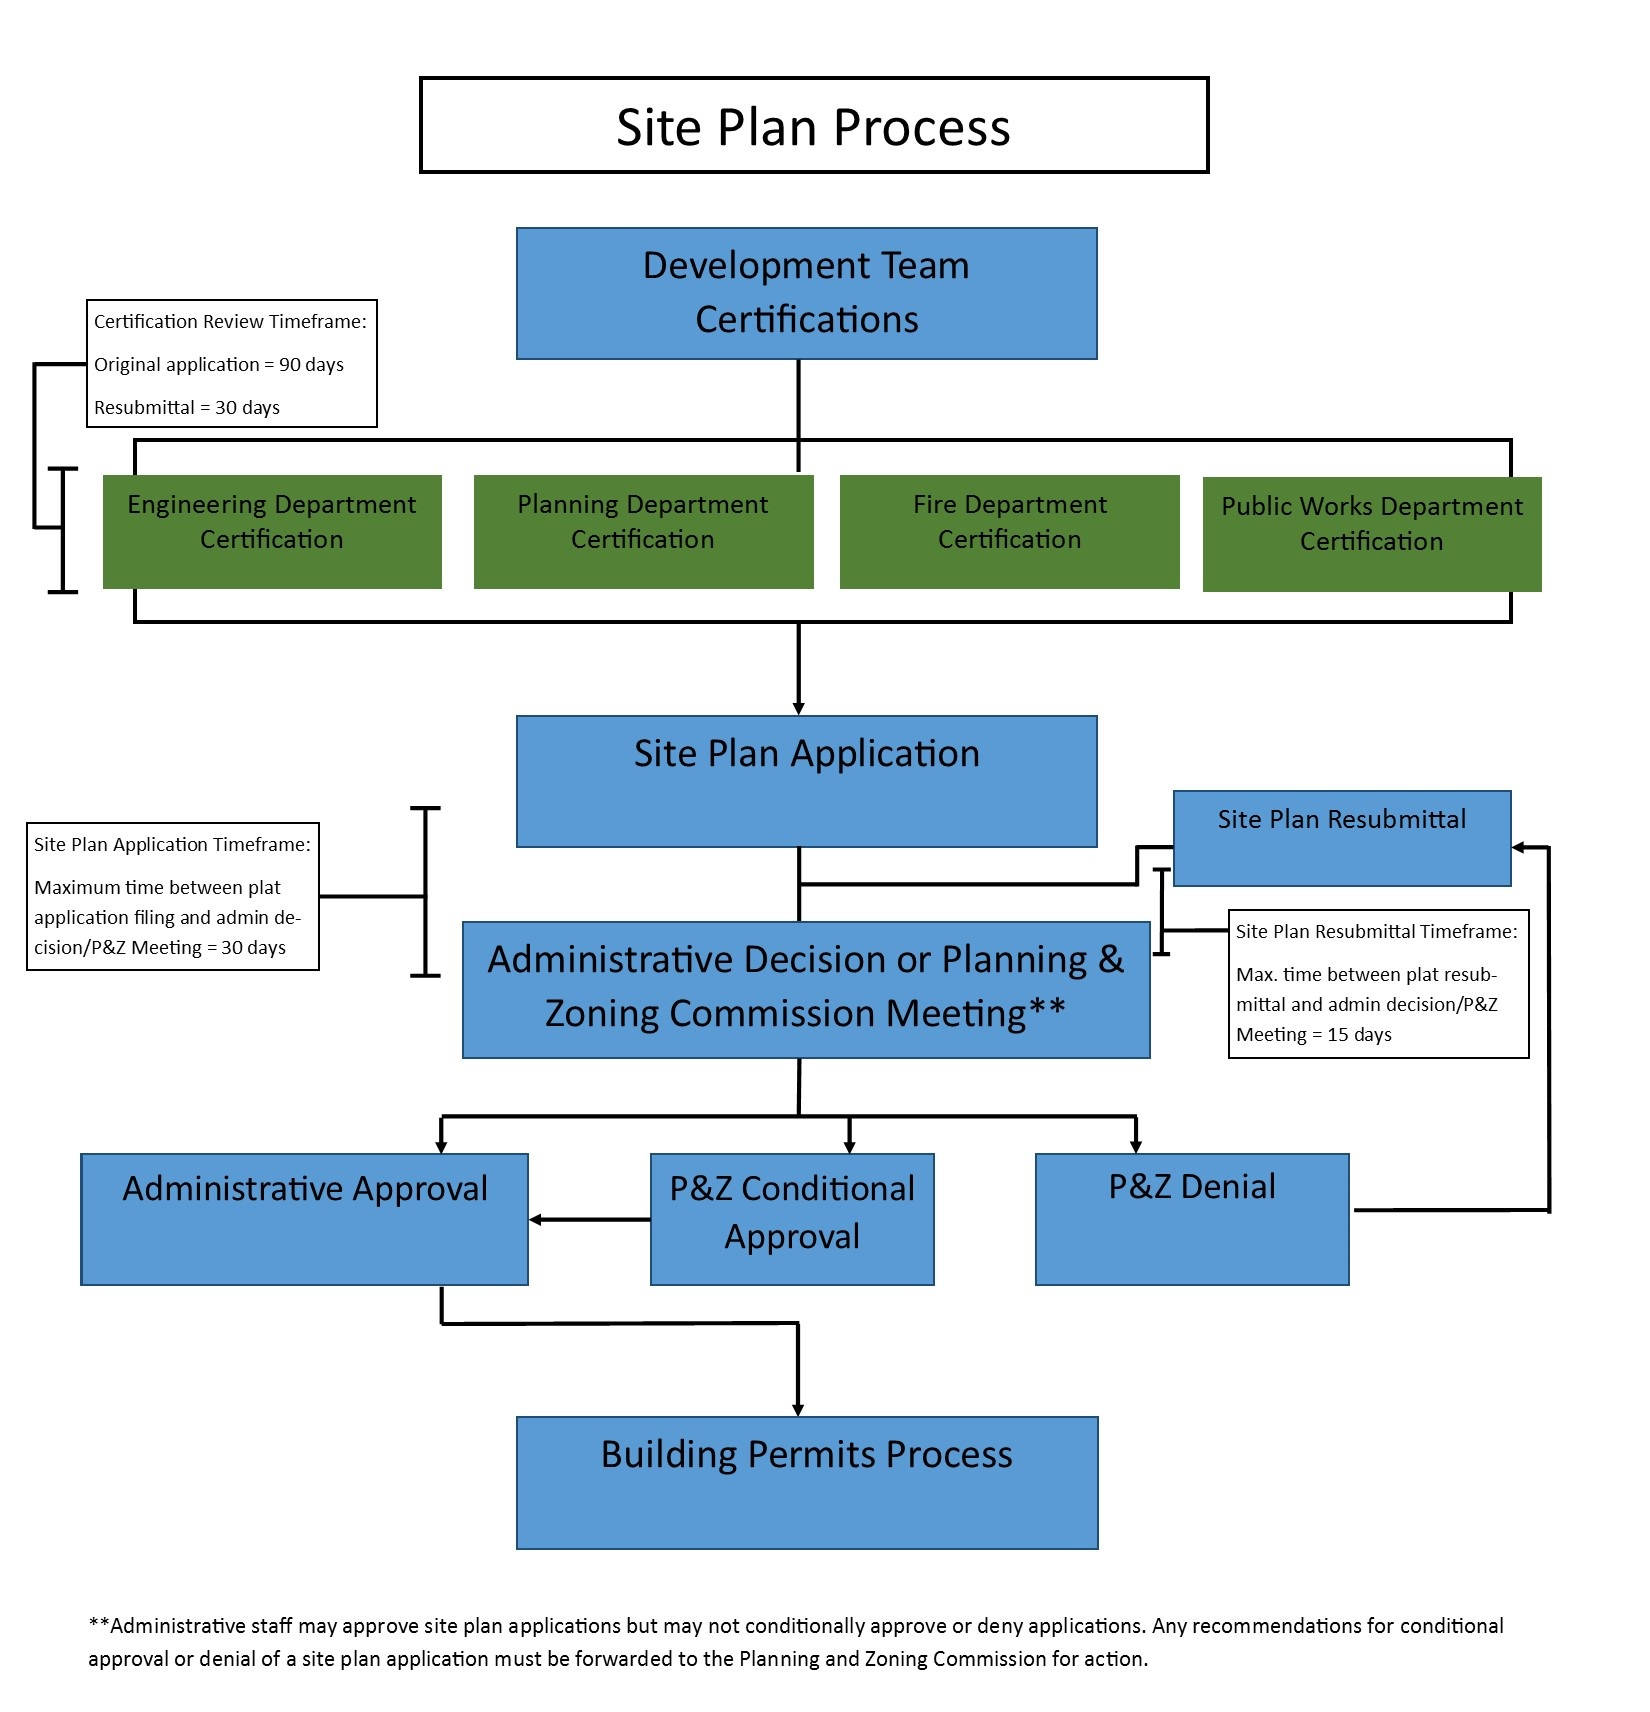 Site Plan Process Flowchart Opens in new window